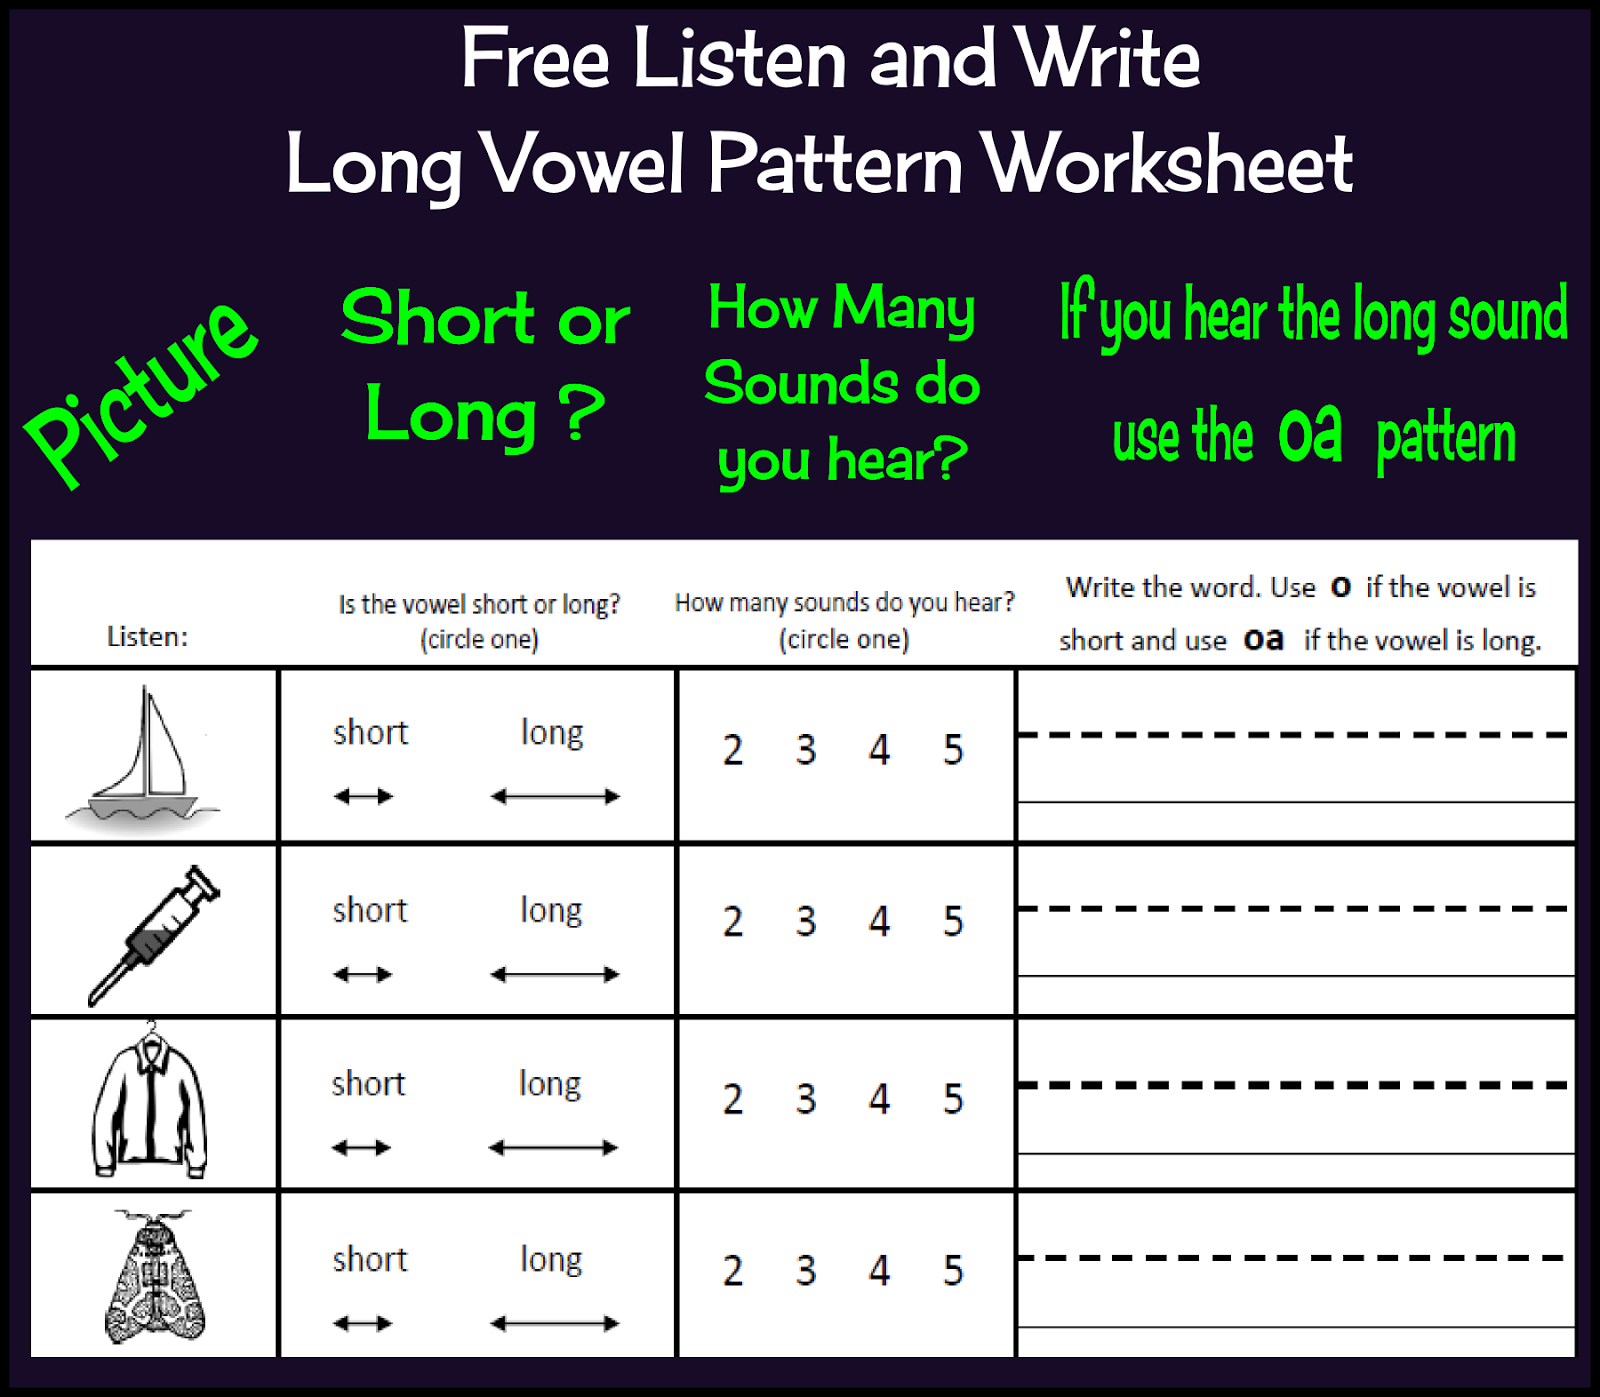 Tchrgrl Free Listen And Write Long Vowel Patterns Worksheet